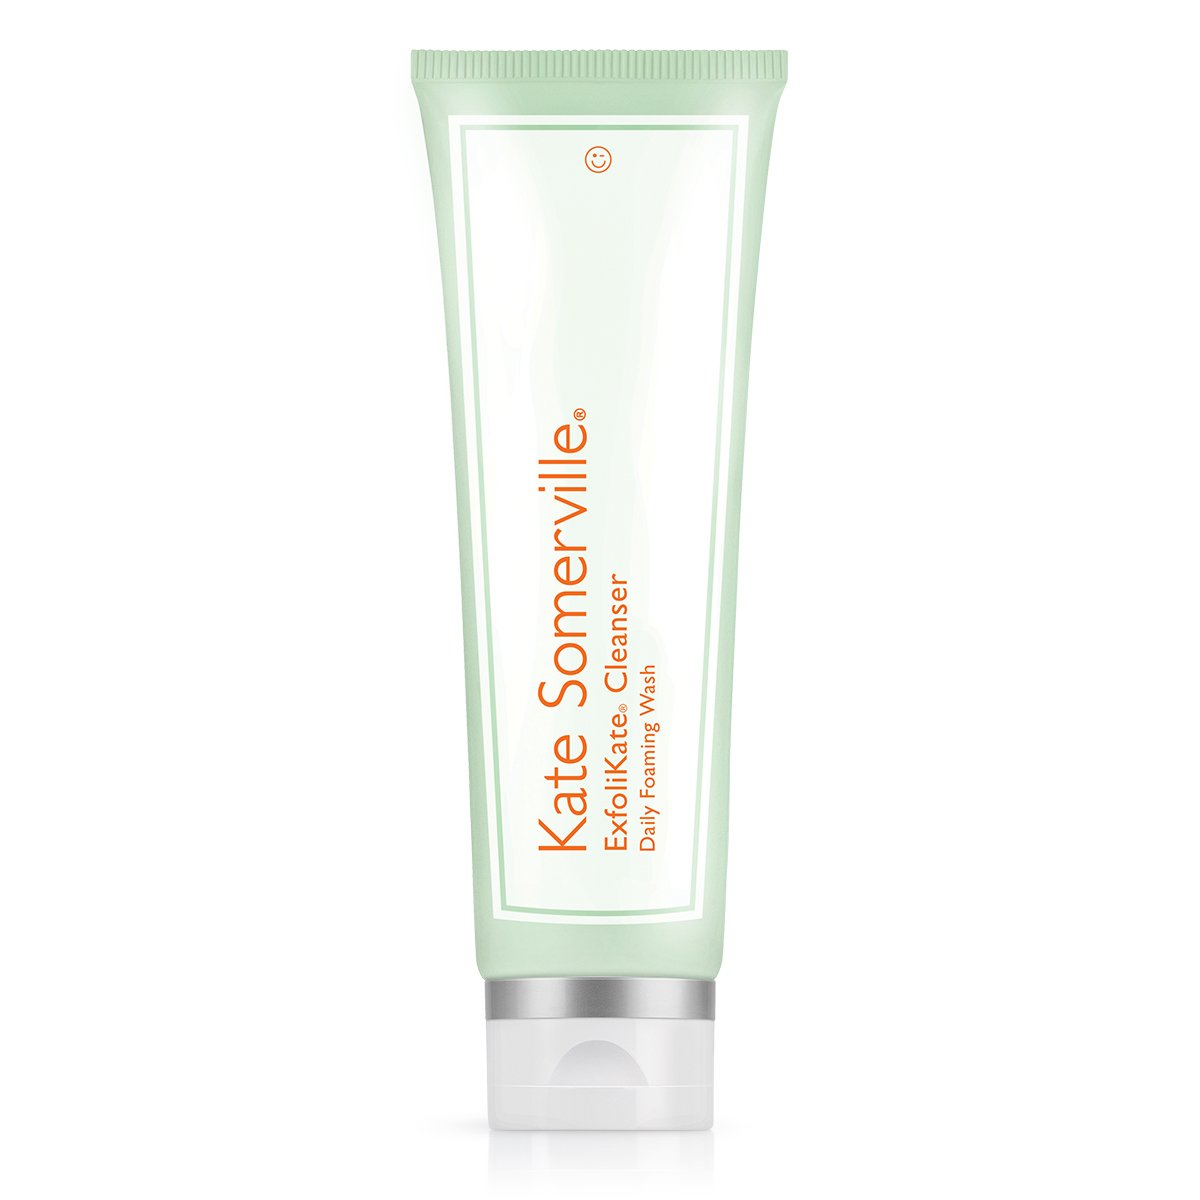 Kate Somerville ExfoliKate Cleanser Daily Foaming Wash120ml